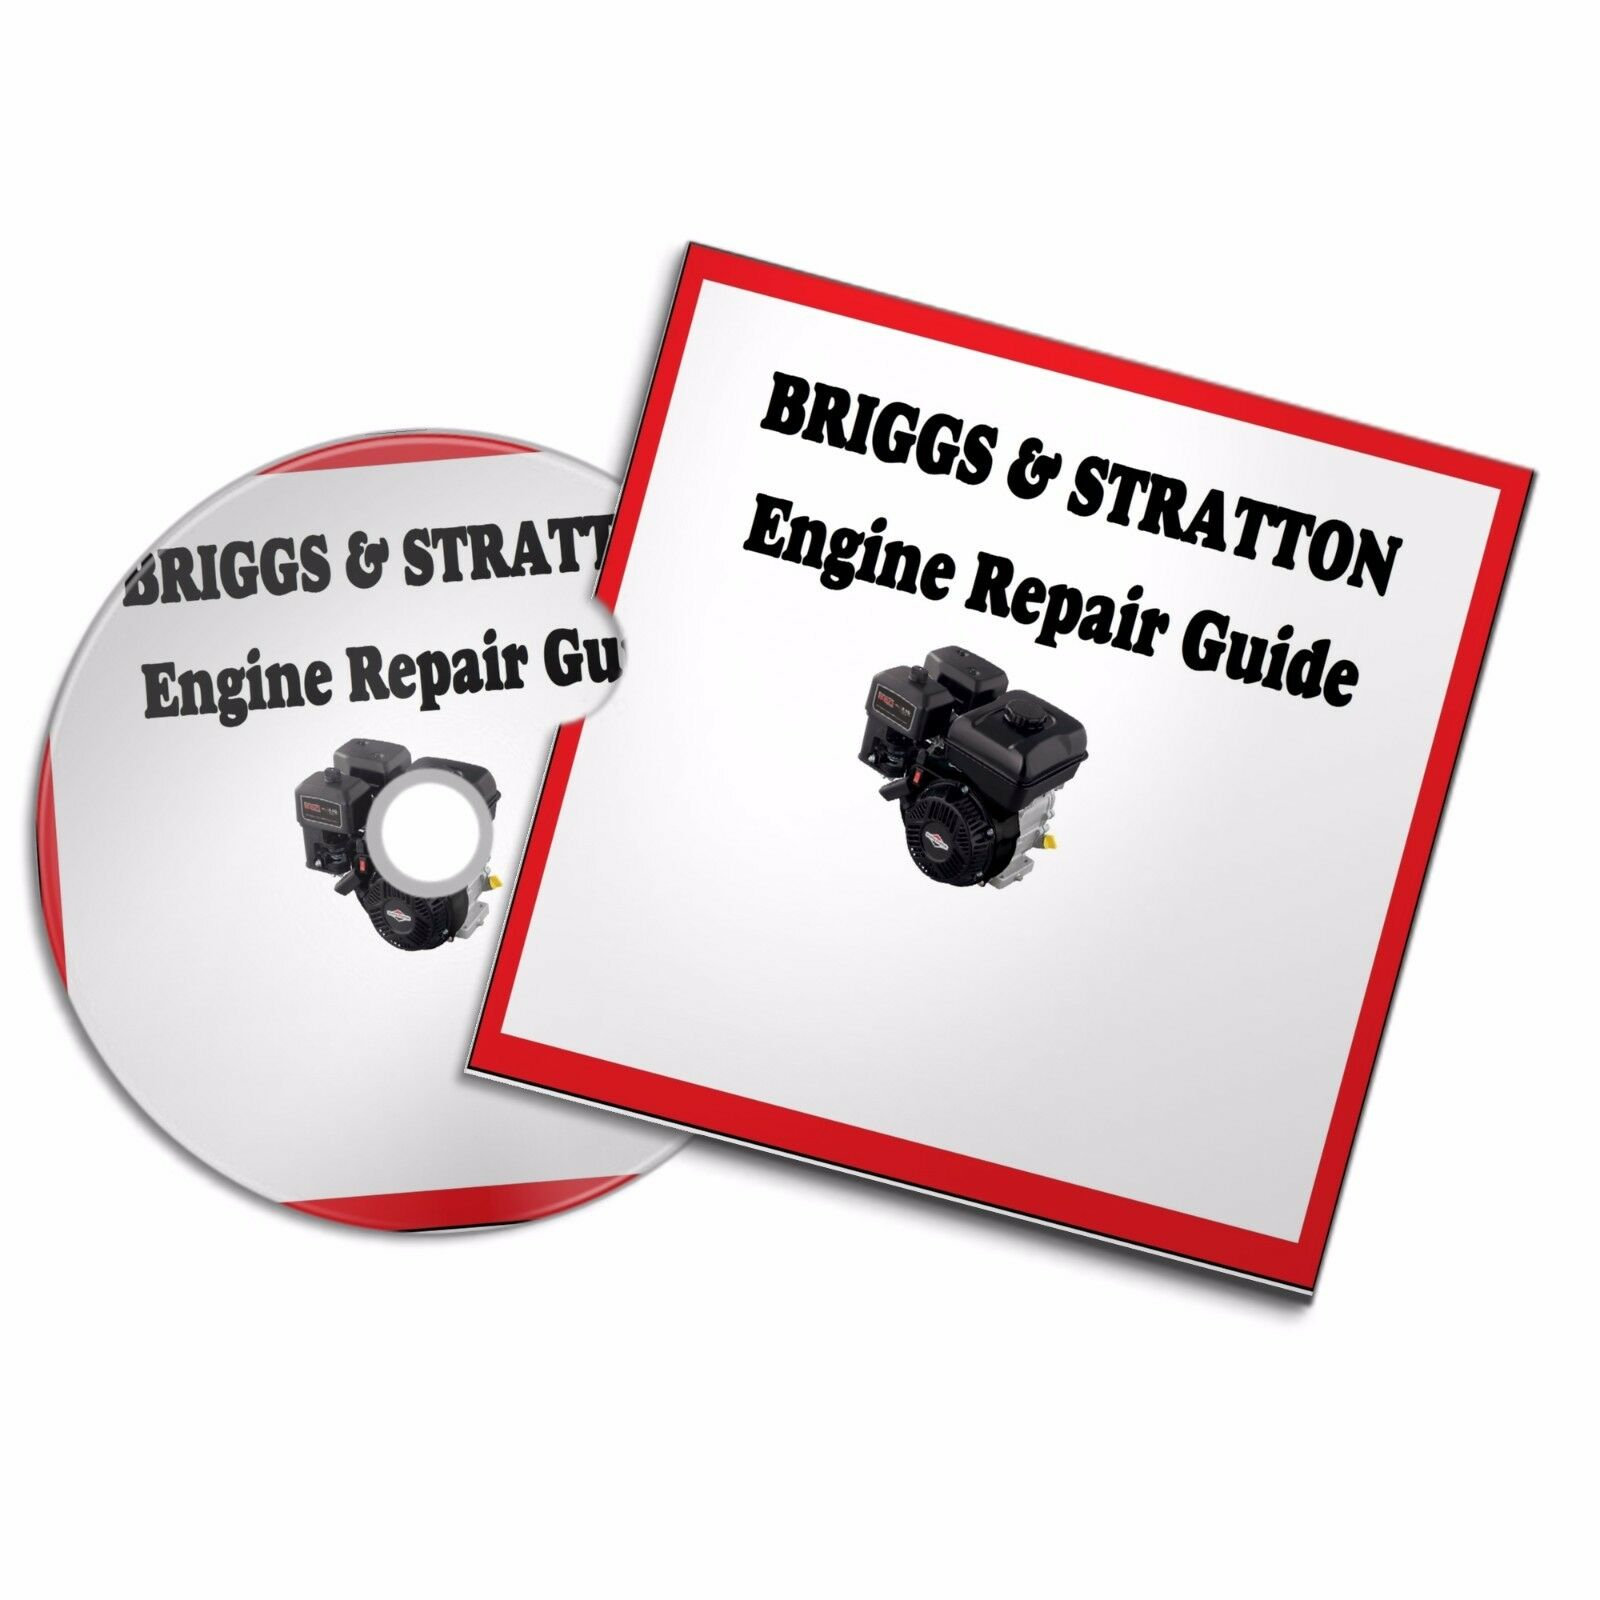 Briggs stratton engine repair workshop manual lawn mower strimmer briggs stratton engine repair workshop manual lawn mower strimmer generator 1 di 12solo 2 disponibili fandeluxe Choice Image